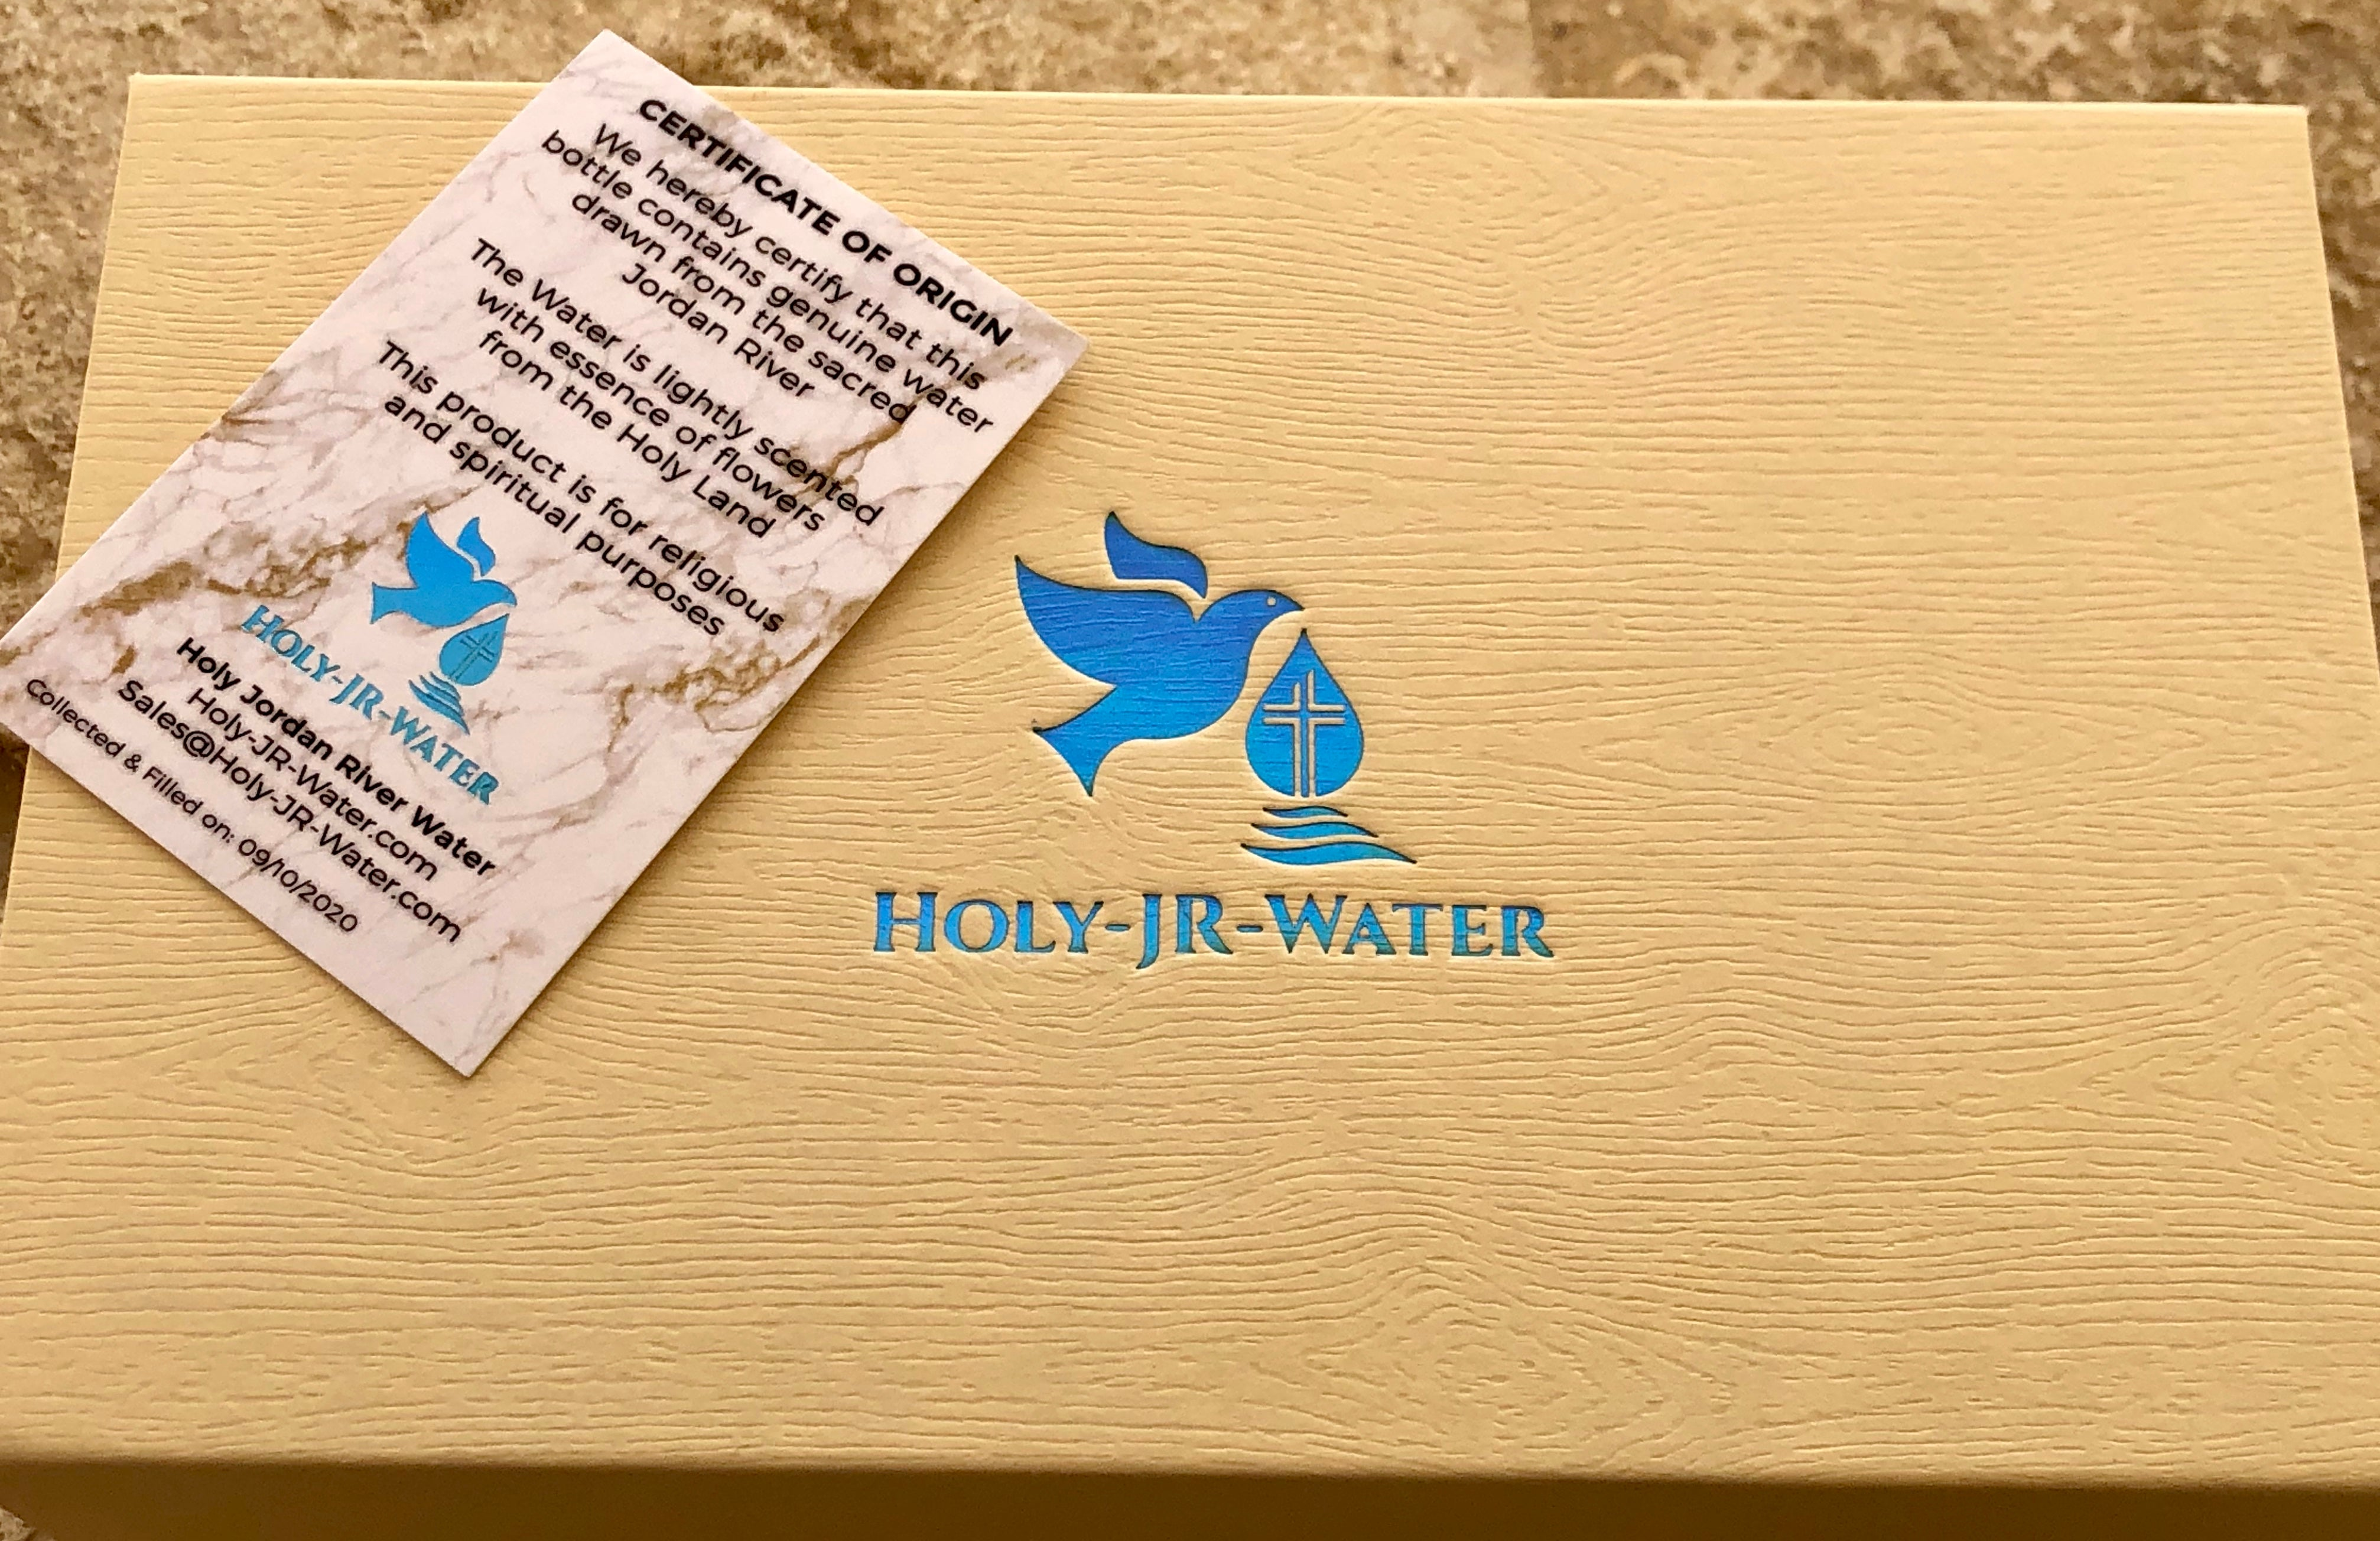 Holy Water Bottle From The Antique Jordan River For Catholic Home Christmas Gift Blessed By Lourdes Packed In Unique Reusable Box With A Certificate Card